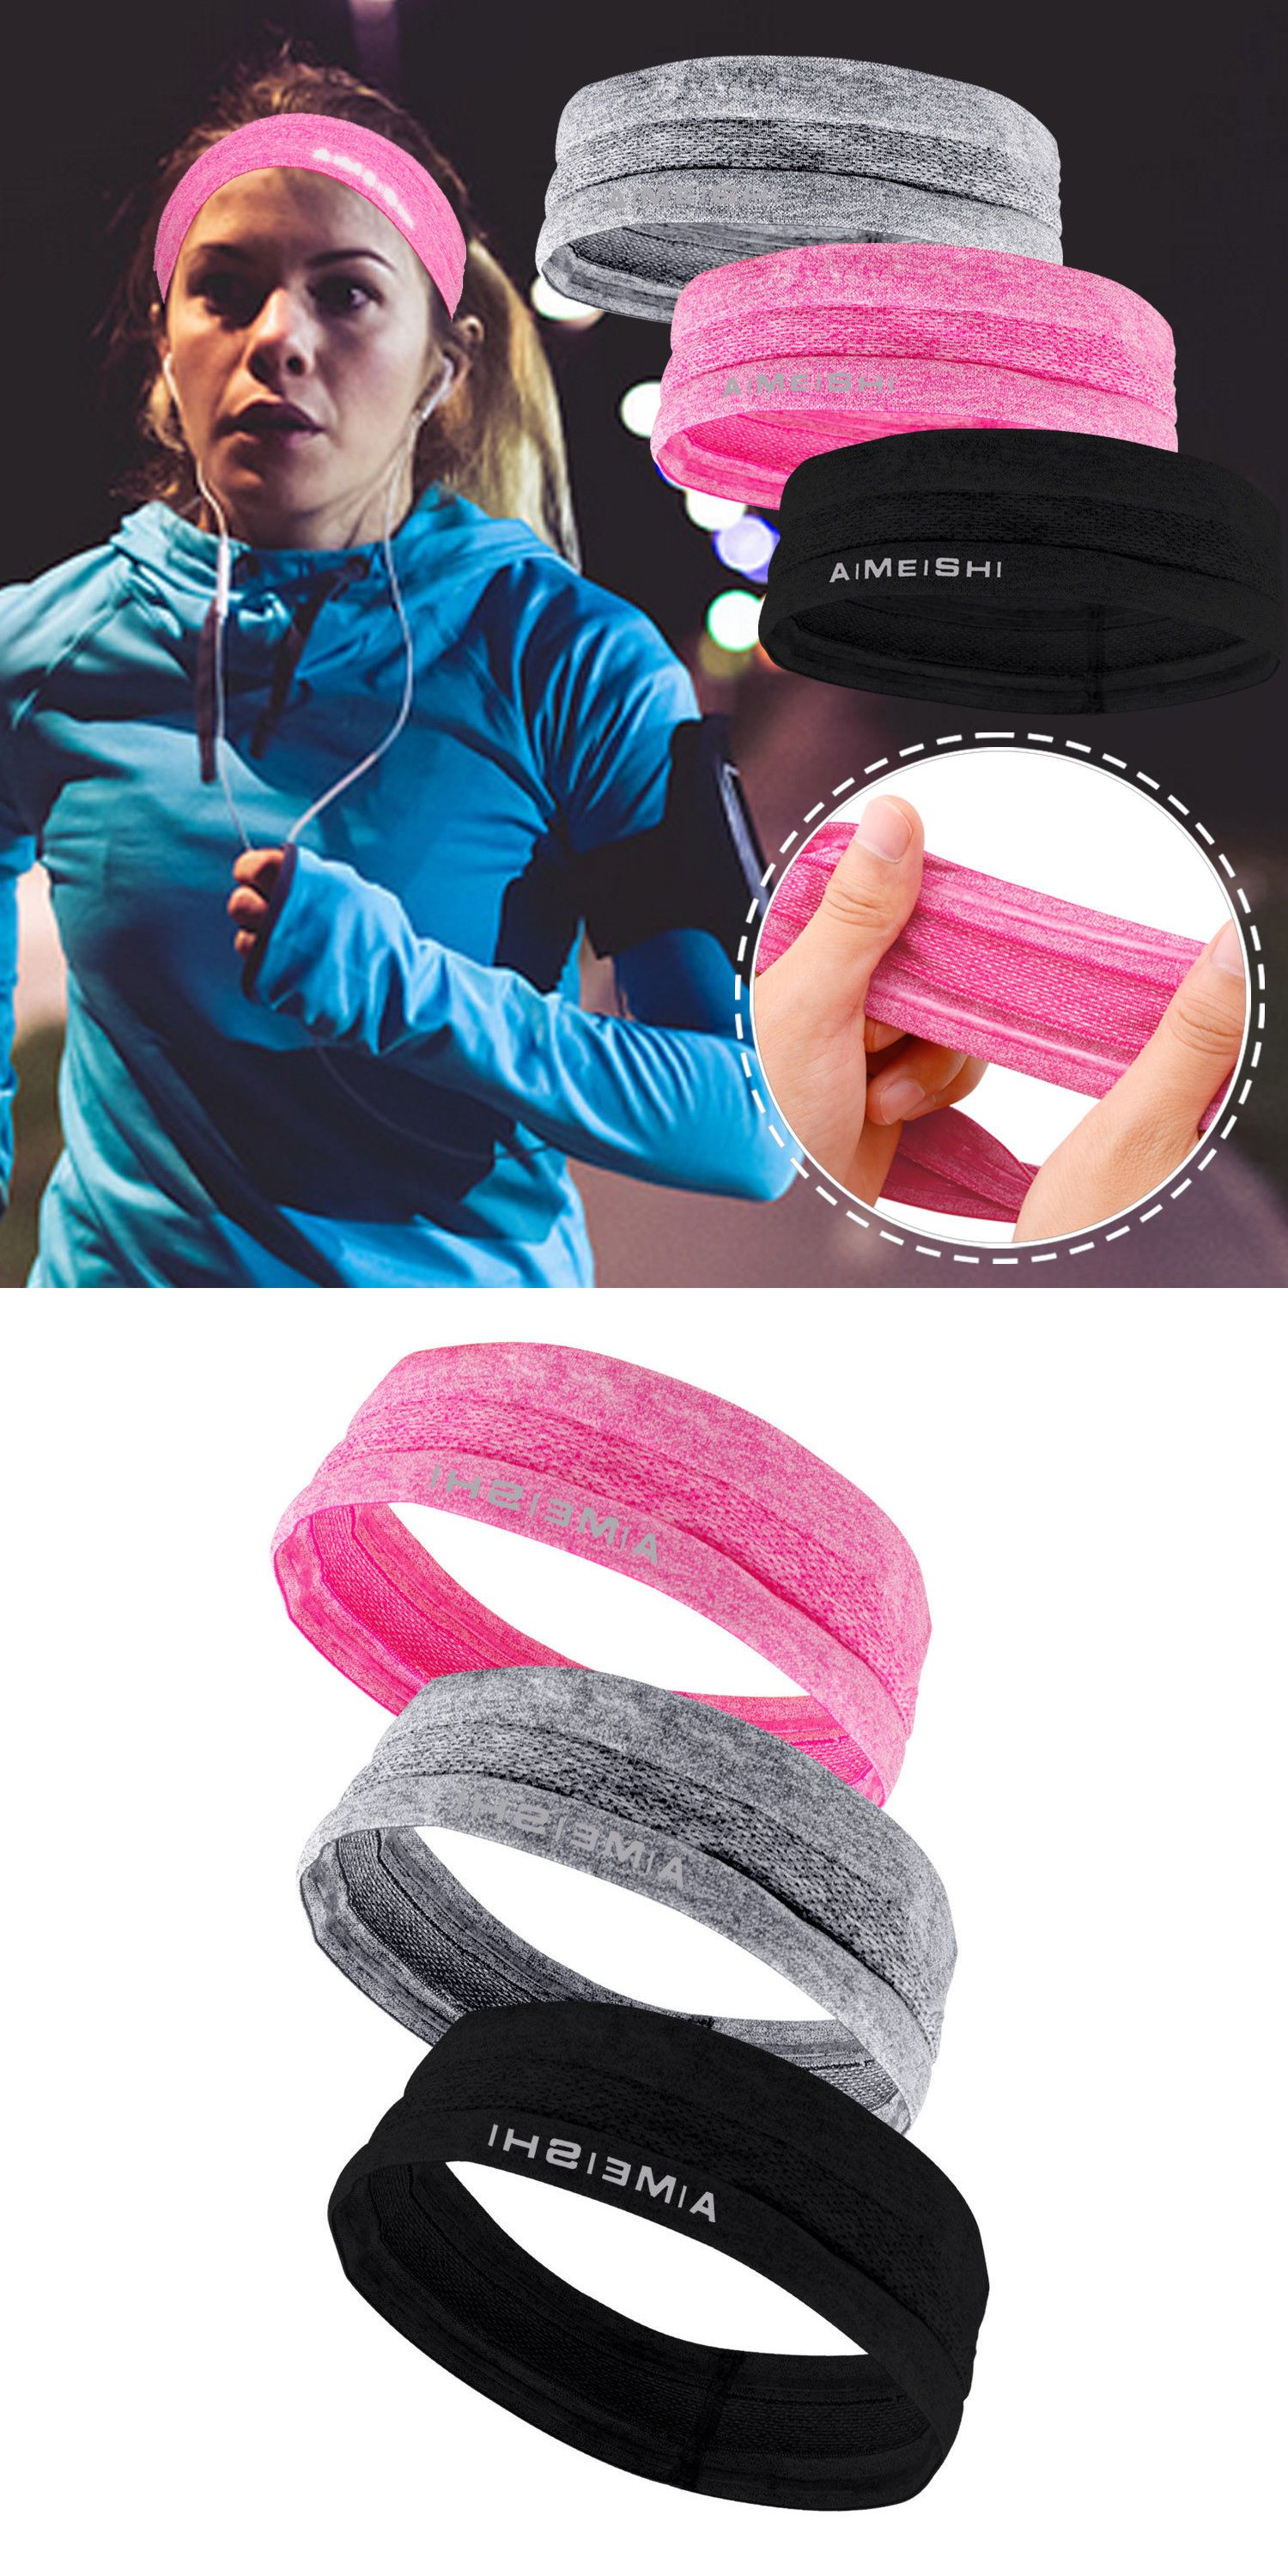 Hair Accessories 45220  Sport Sweat Sweatband Headband Women Men Yoga Gym  Workout Stretch Hair Head Band -  BUY IT NOW ONLY   12.15 on  eBay   accessories ... 1aa01cfc394